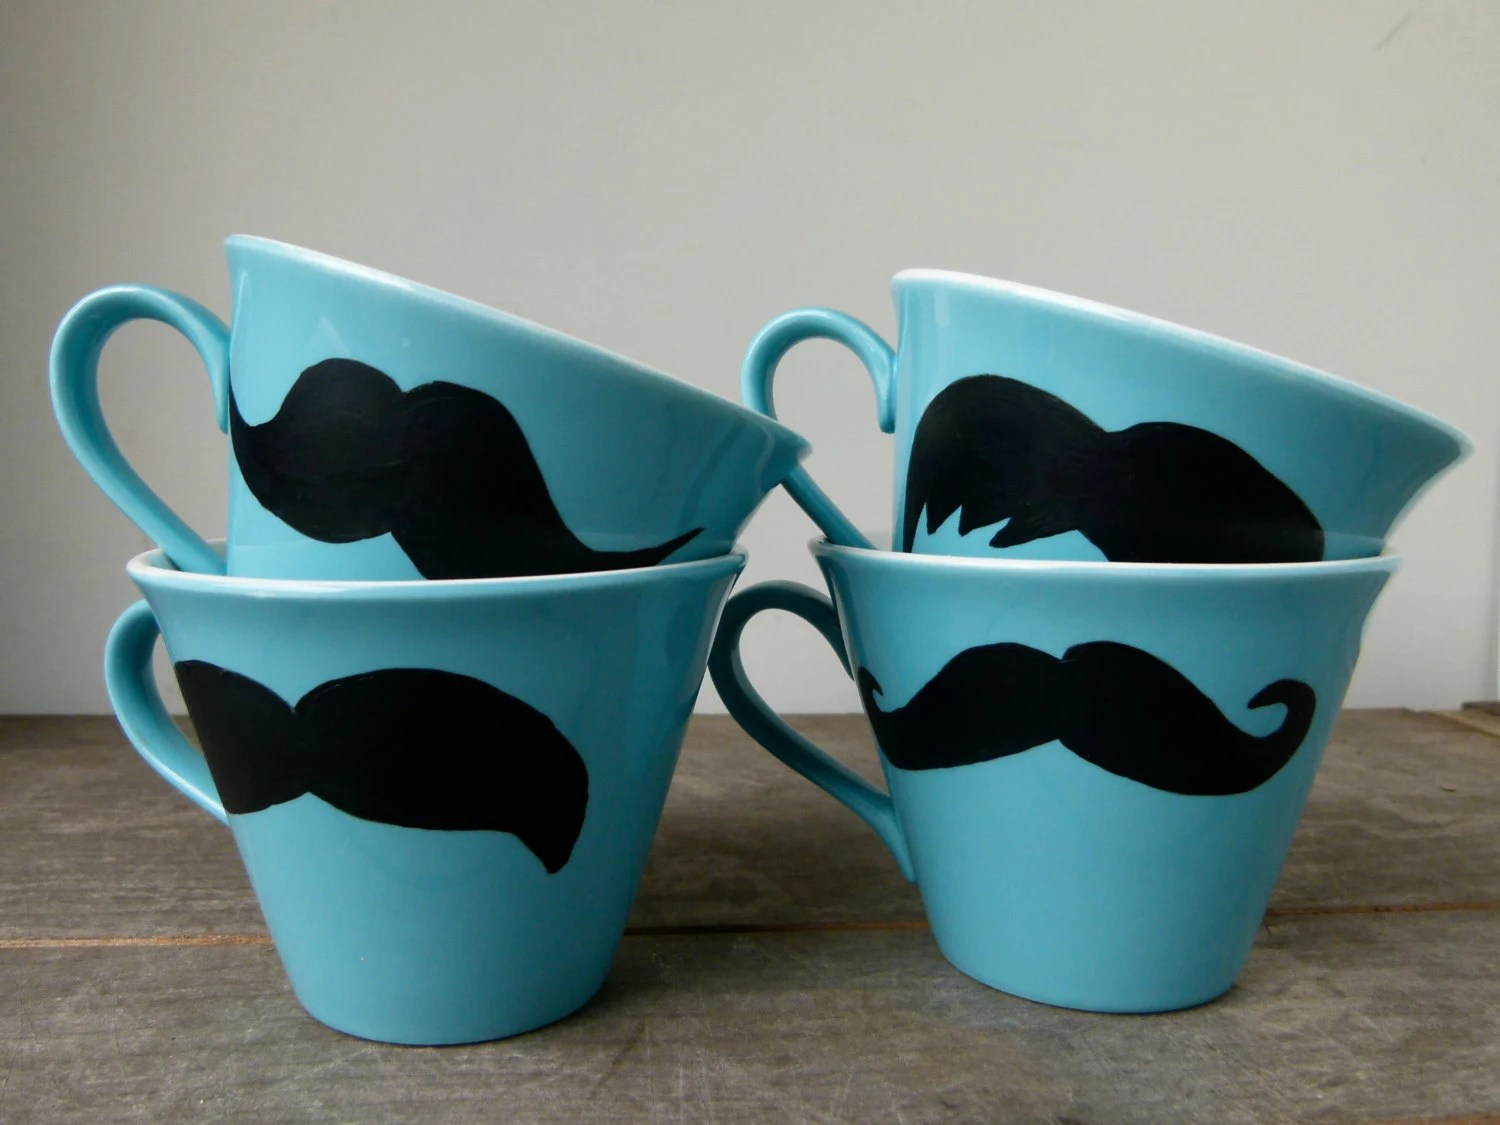 SUMMER SALE - Mustache Mugs, Set of Four Mugs, Turquoise Mugs, Housewarming Gift, Groomsmen Gift - frankieandcocopdx